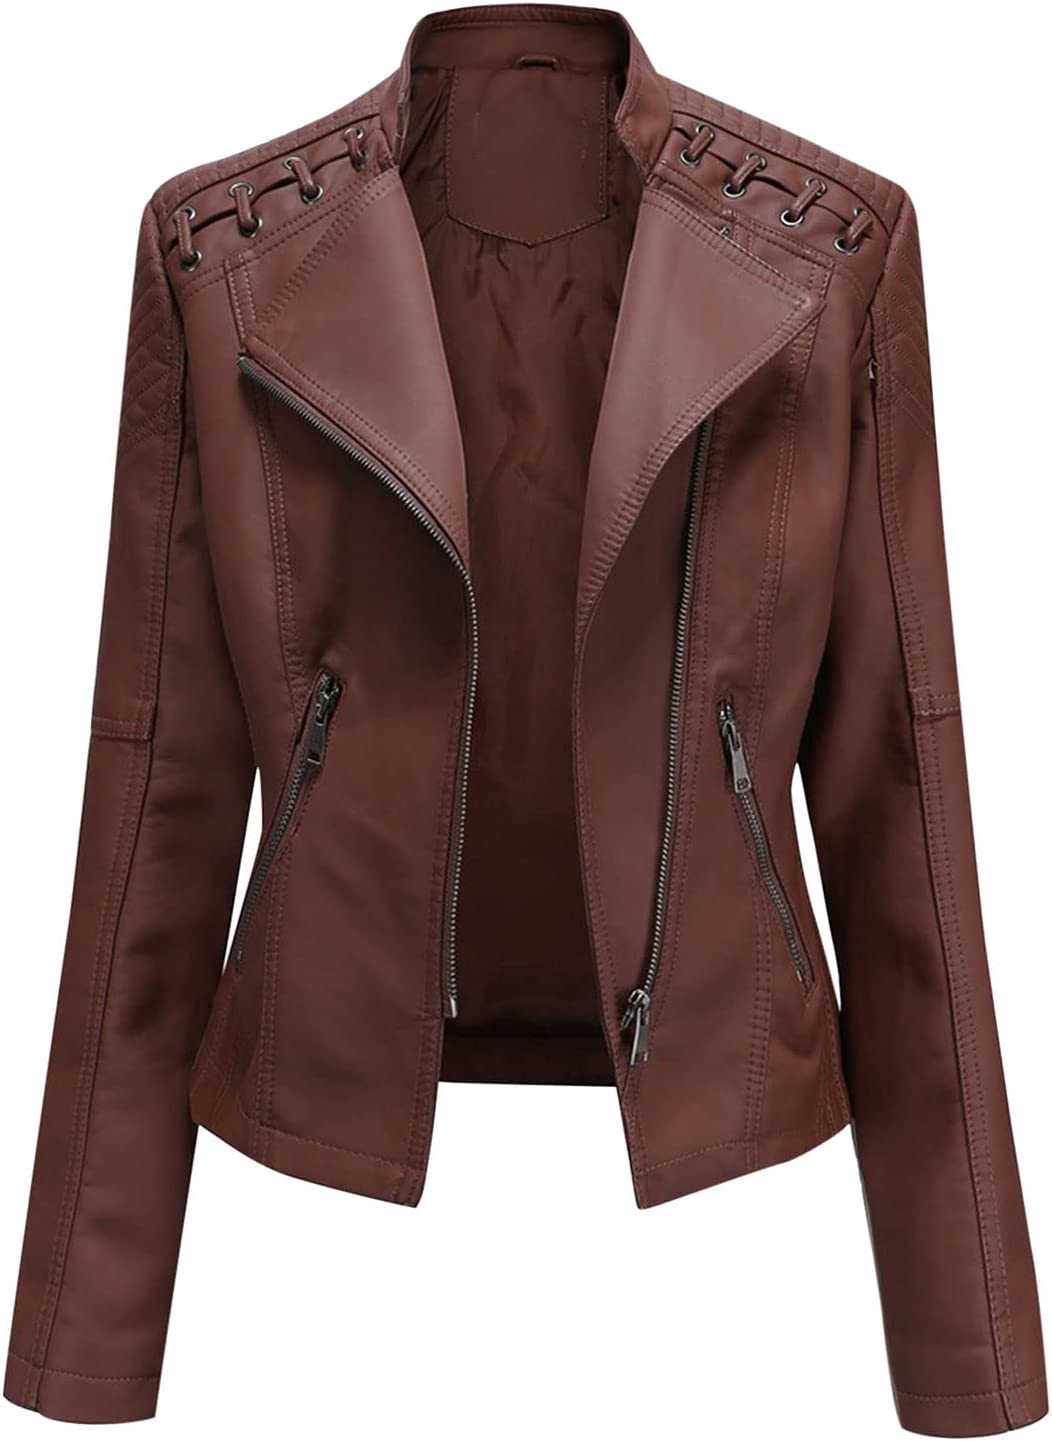 Lucaintus Women's Zipper Front Casual Pu Leather Jacket Long Sleeve Top with Pockets(Coffee,S)